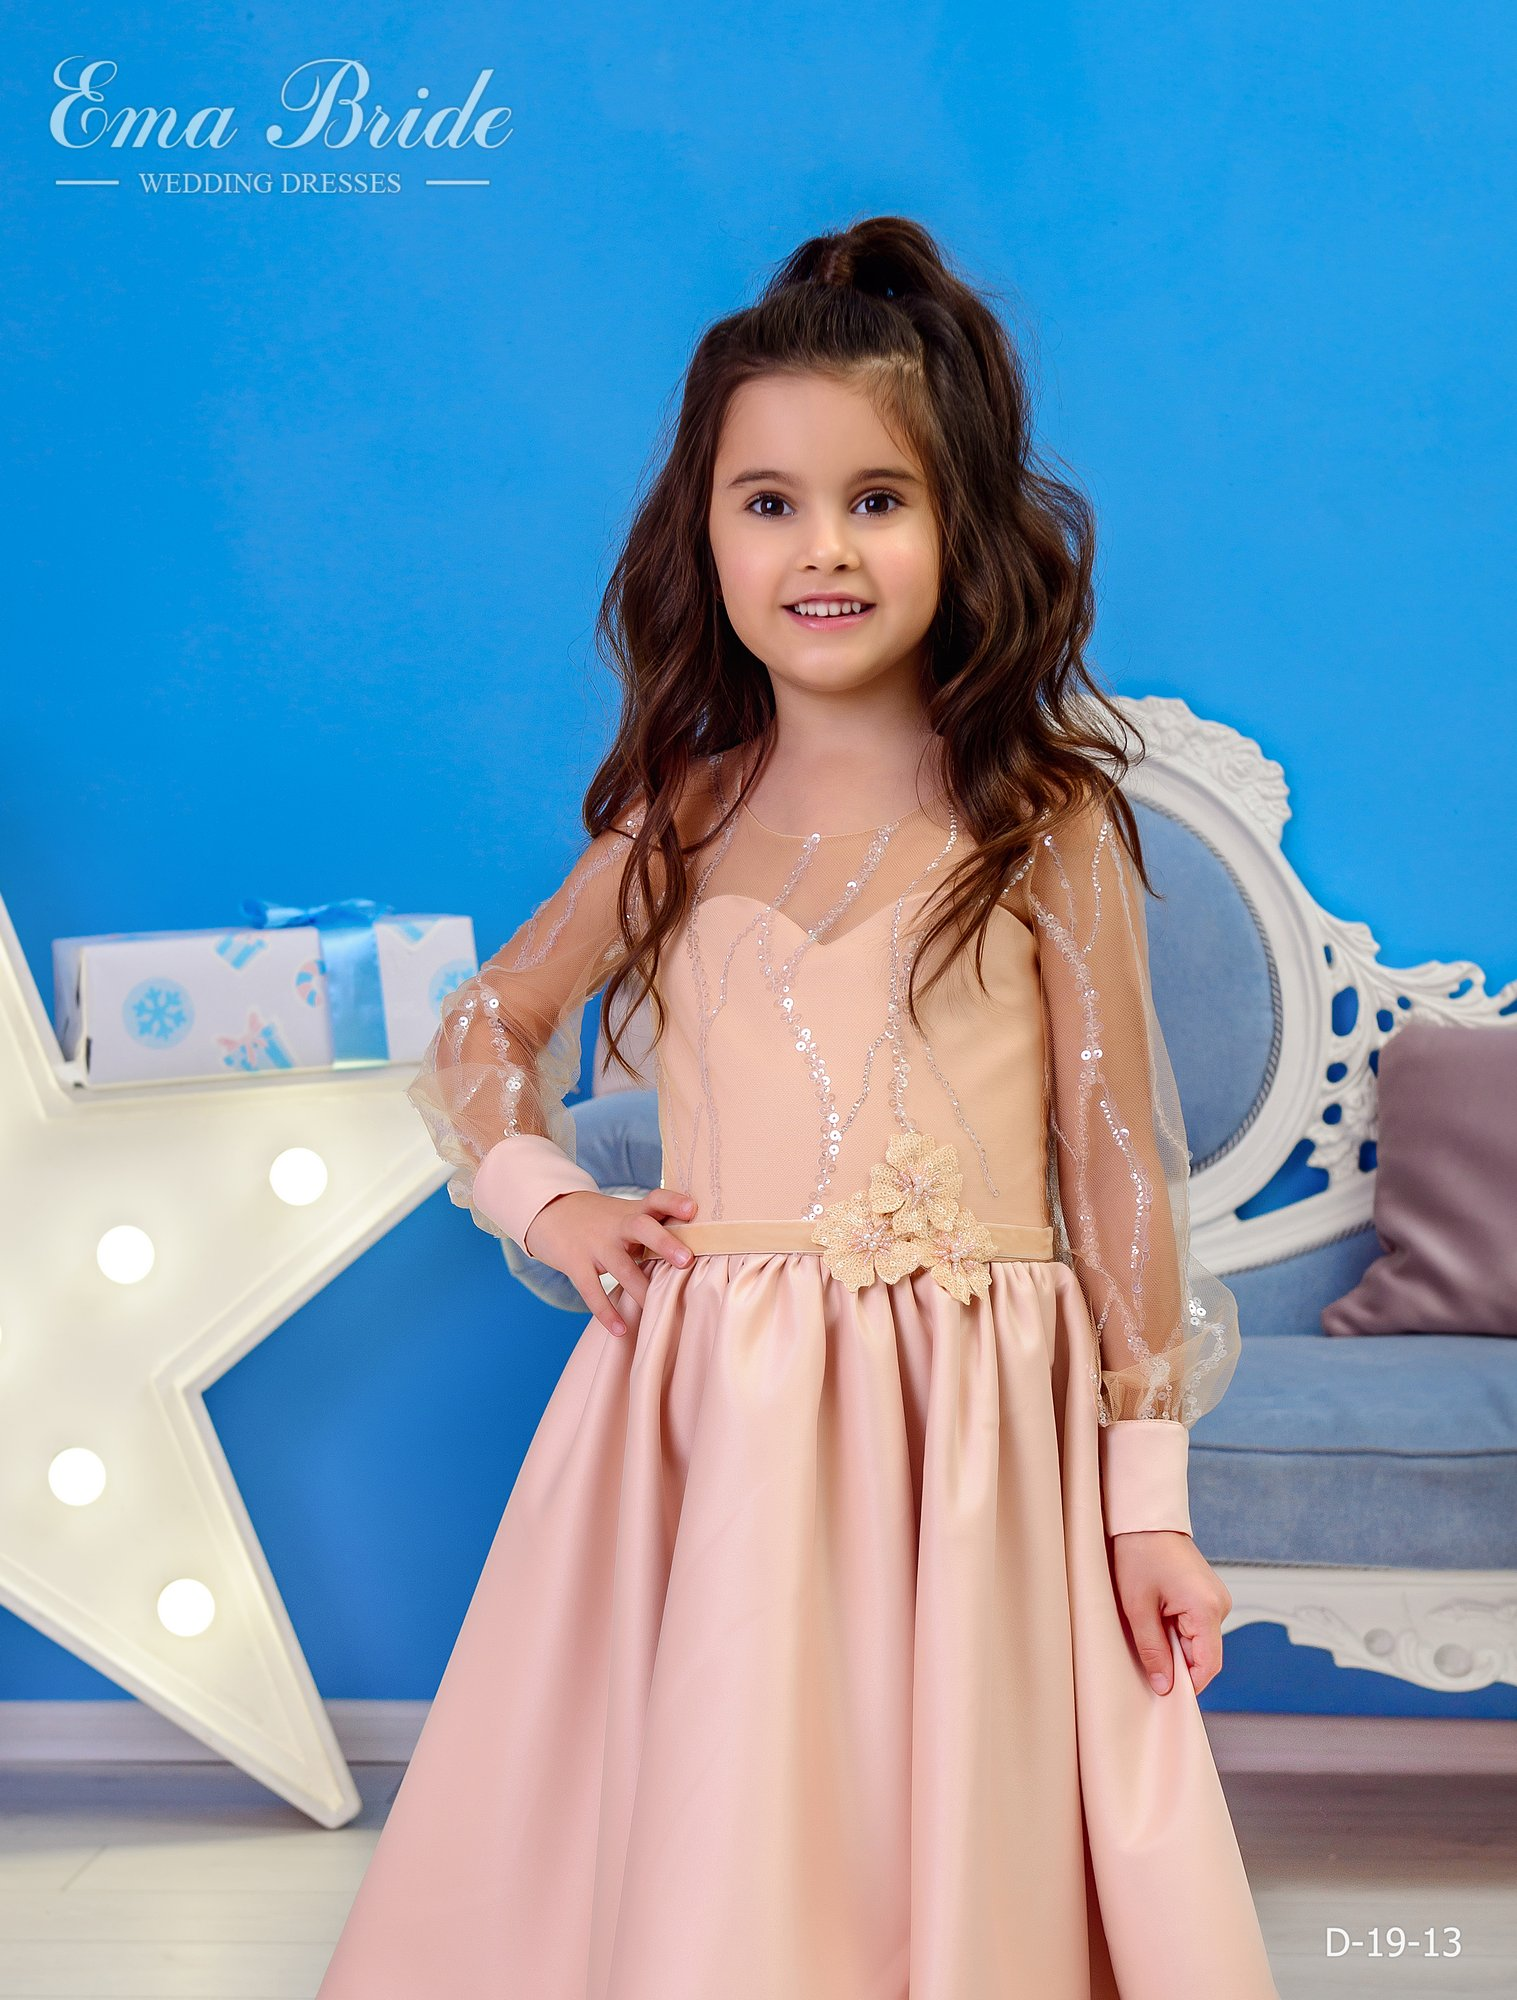 Children's dress by EmaBride D-19-13 2019-1